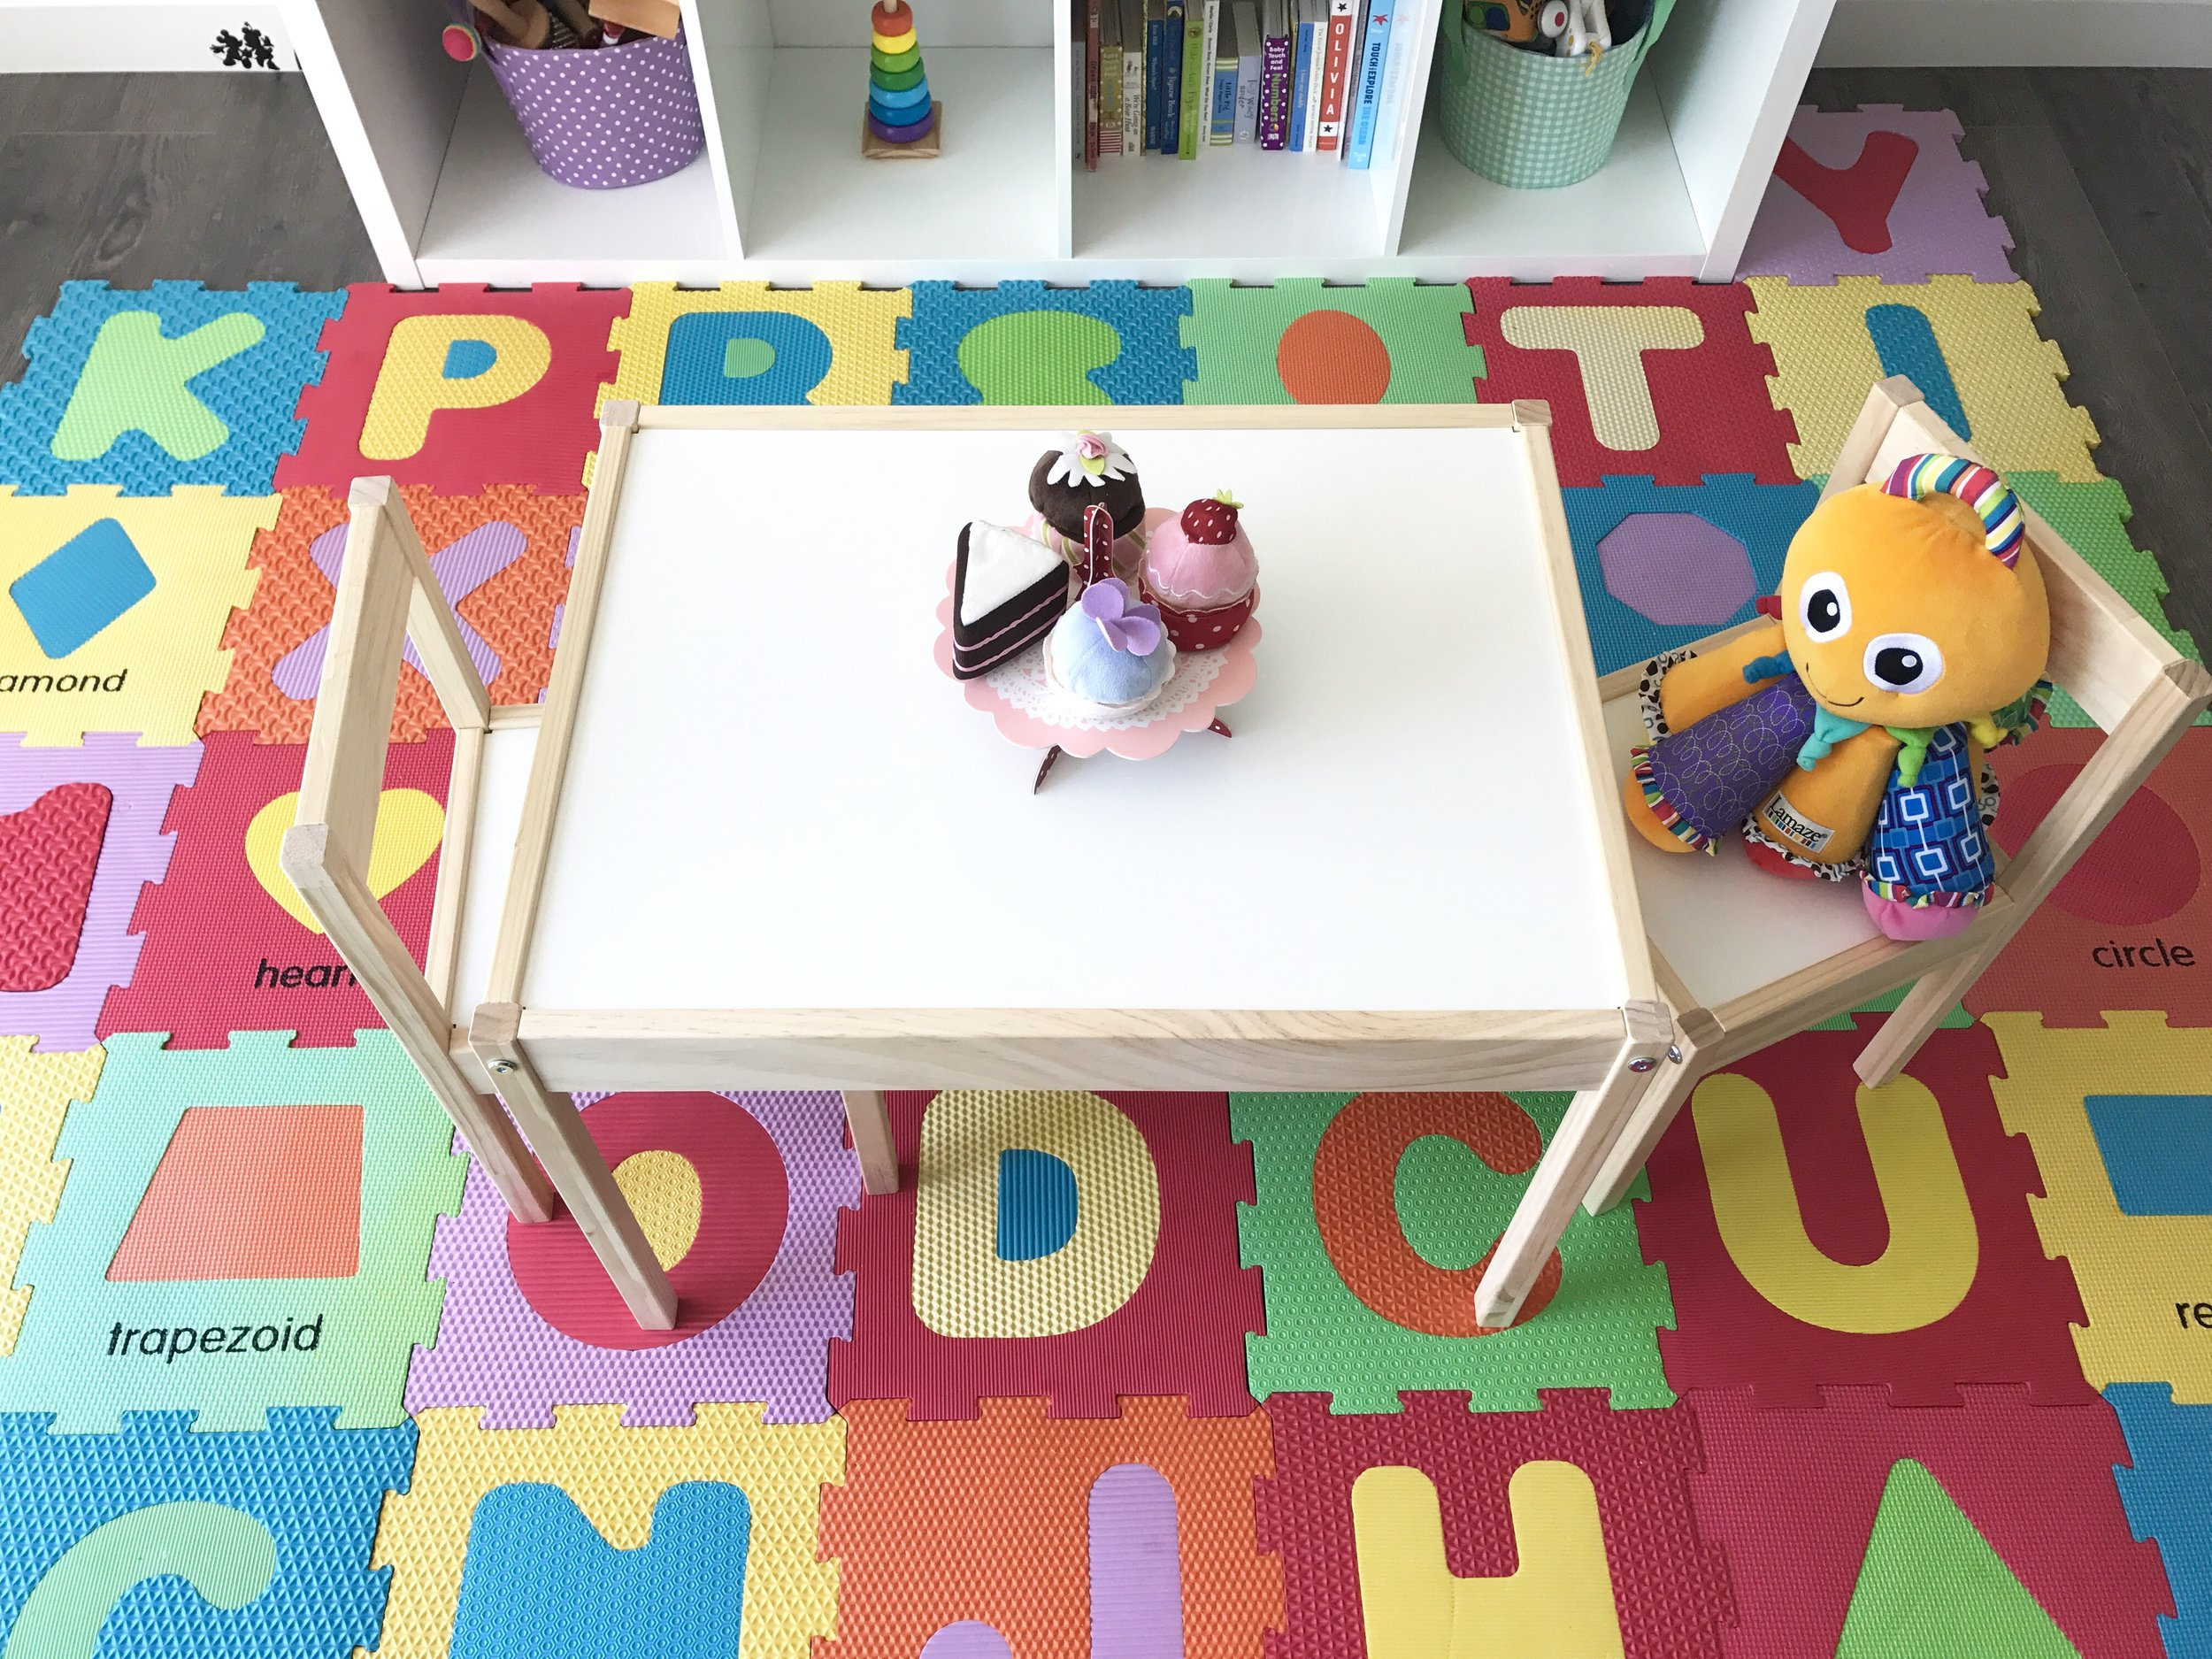 Amelia's play area has taken on a new purpose! As I dive more into researching Homeschooling (I'm going to be homeschooling Amelia until Kindergarten I've decided) and the montessori method, I've started making small changes to this area that she can learn to work and grow with. Pictured here is her new table and chairs I purchased from Ikea! This will serve as her snack table, learning area and play area all in one!